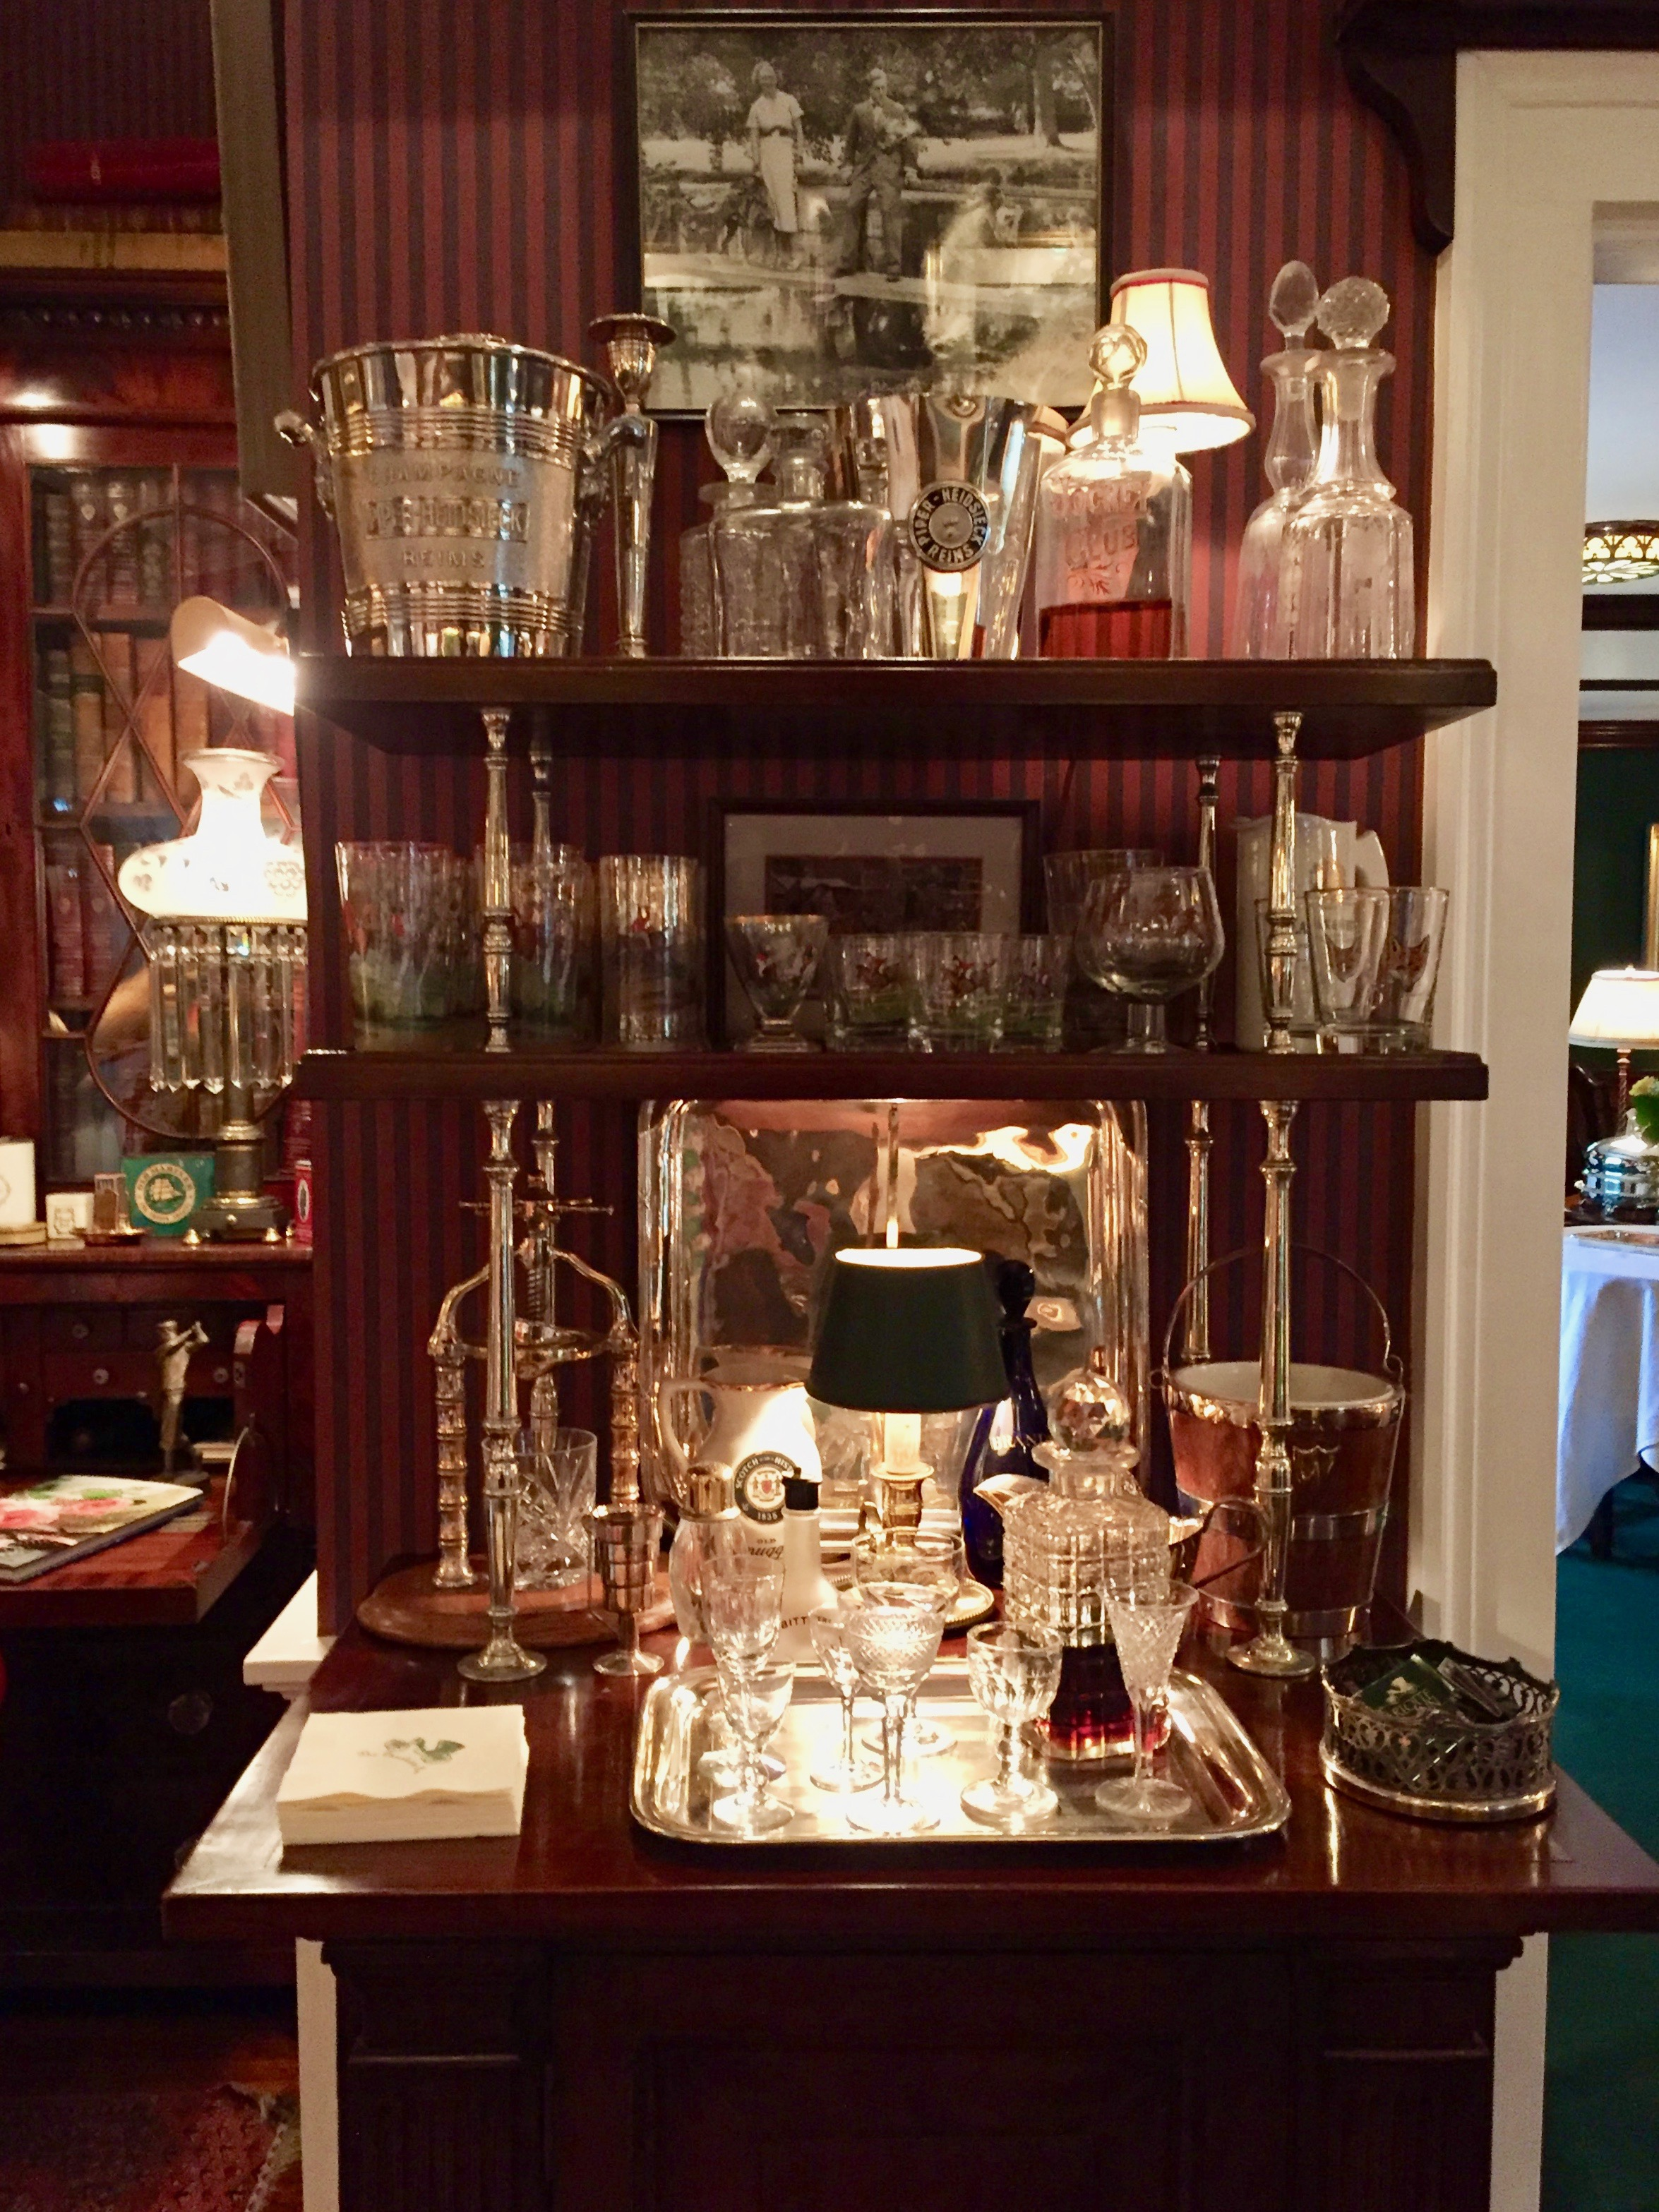 Glassware Collection The Charlotte Inn New England Fine Living visit